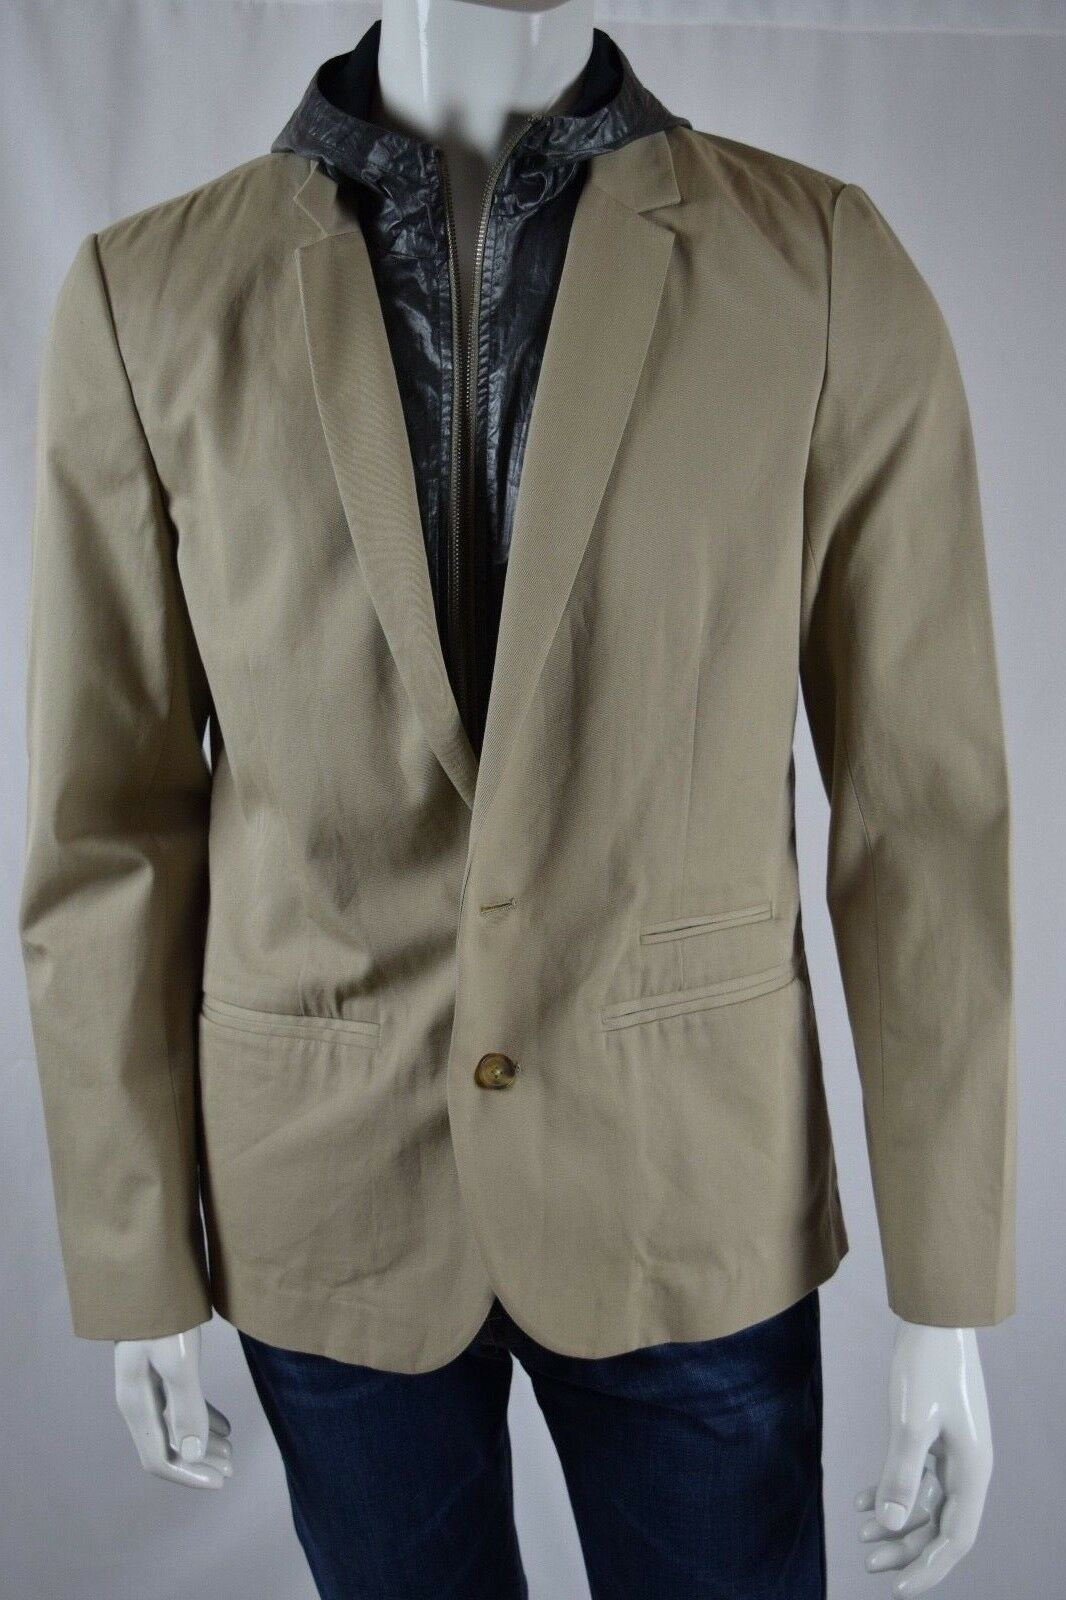 New Seven 7 FOR ALL MANKIND Casual BLAZER removable for Men SZ XL IN BEIGE KHAKI